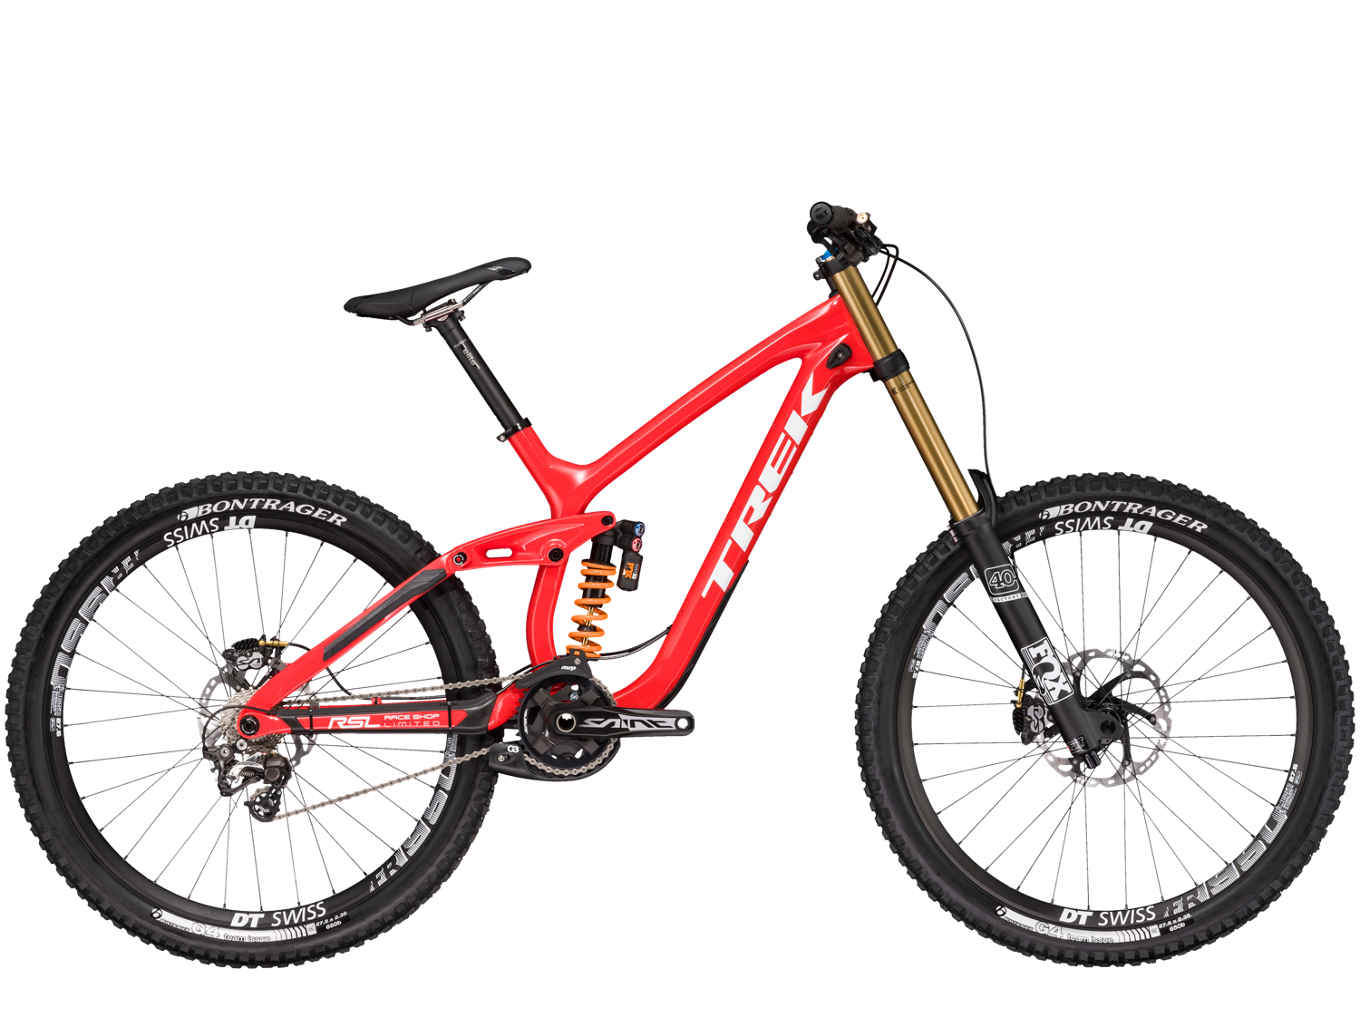 Downhill-Mountainbikes | Trek Bikes (DE)